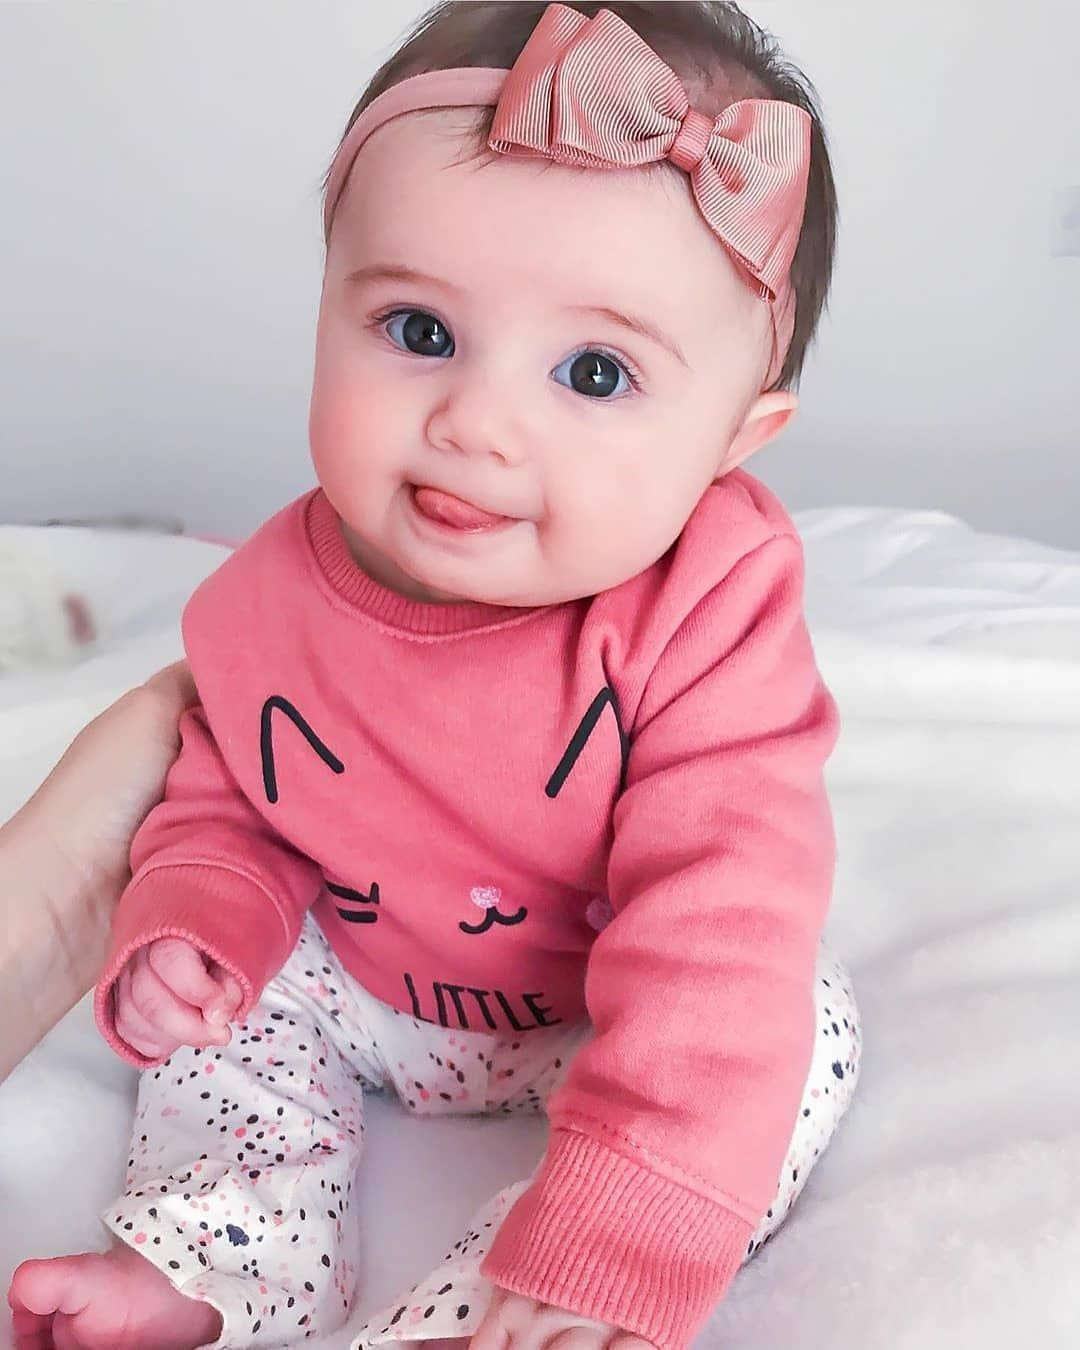 Baby Love Dp : Little, Girl,, Images,